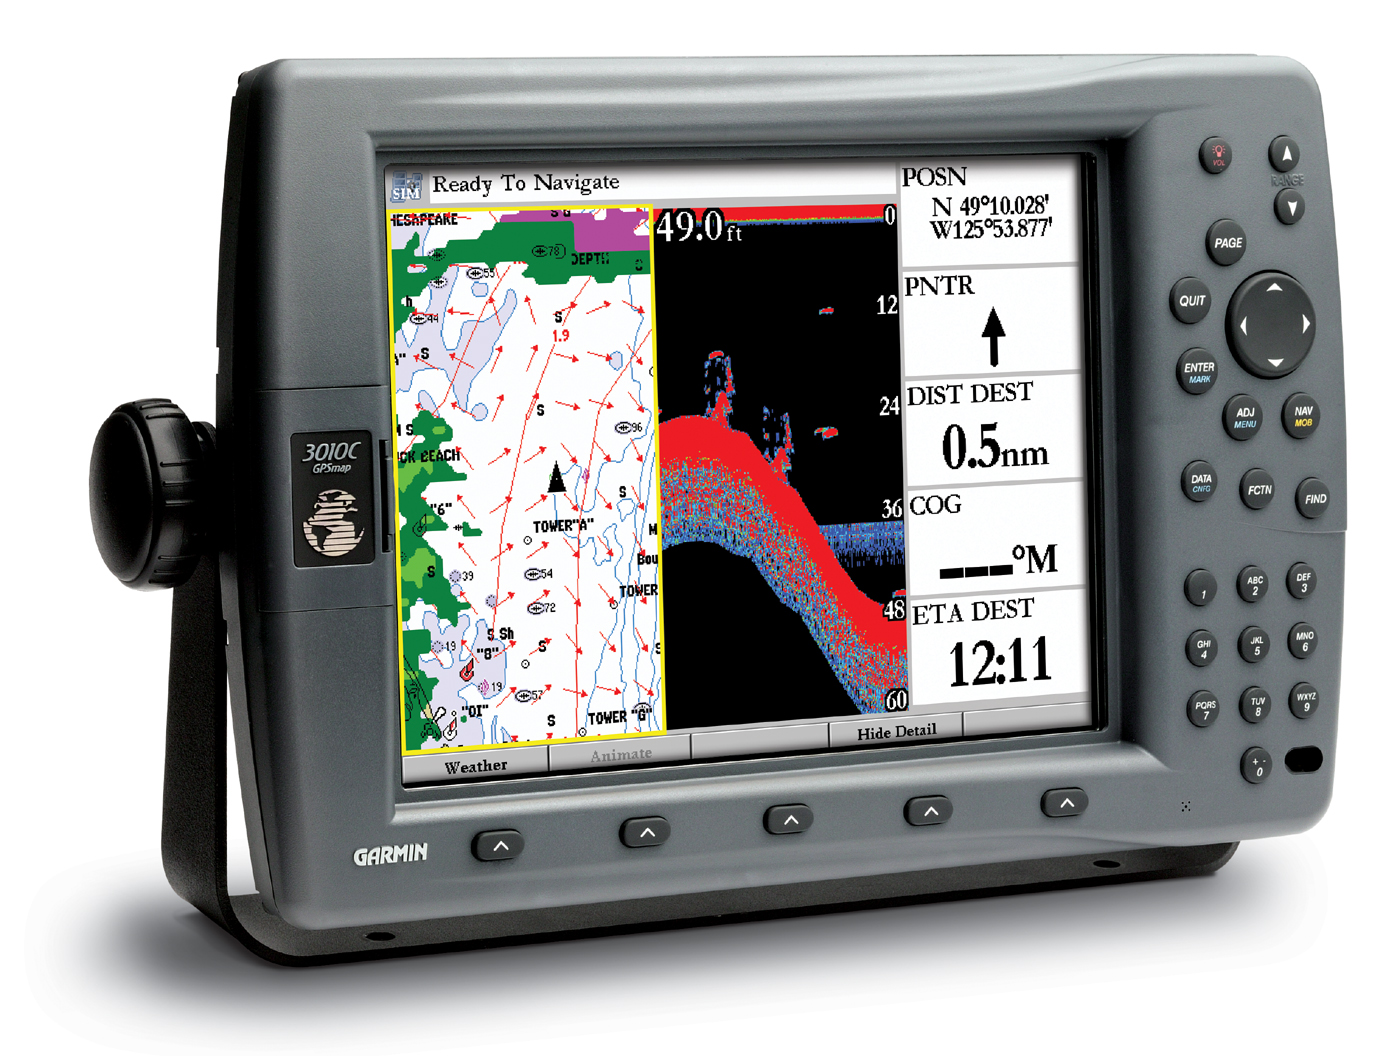 Garmin 3010c Wiring Diagram 300c Fishfinder Media Gallery 2010c Gpsmap With Xmwx Marine Network